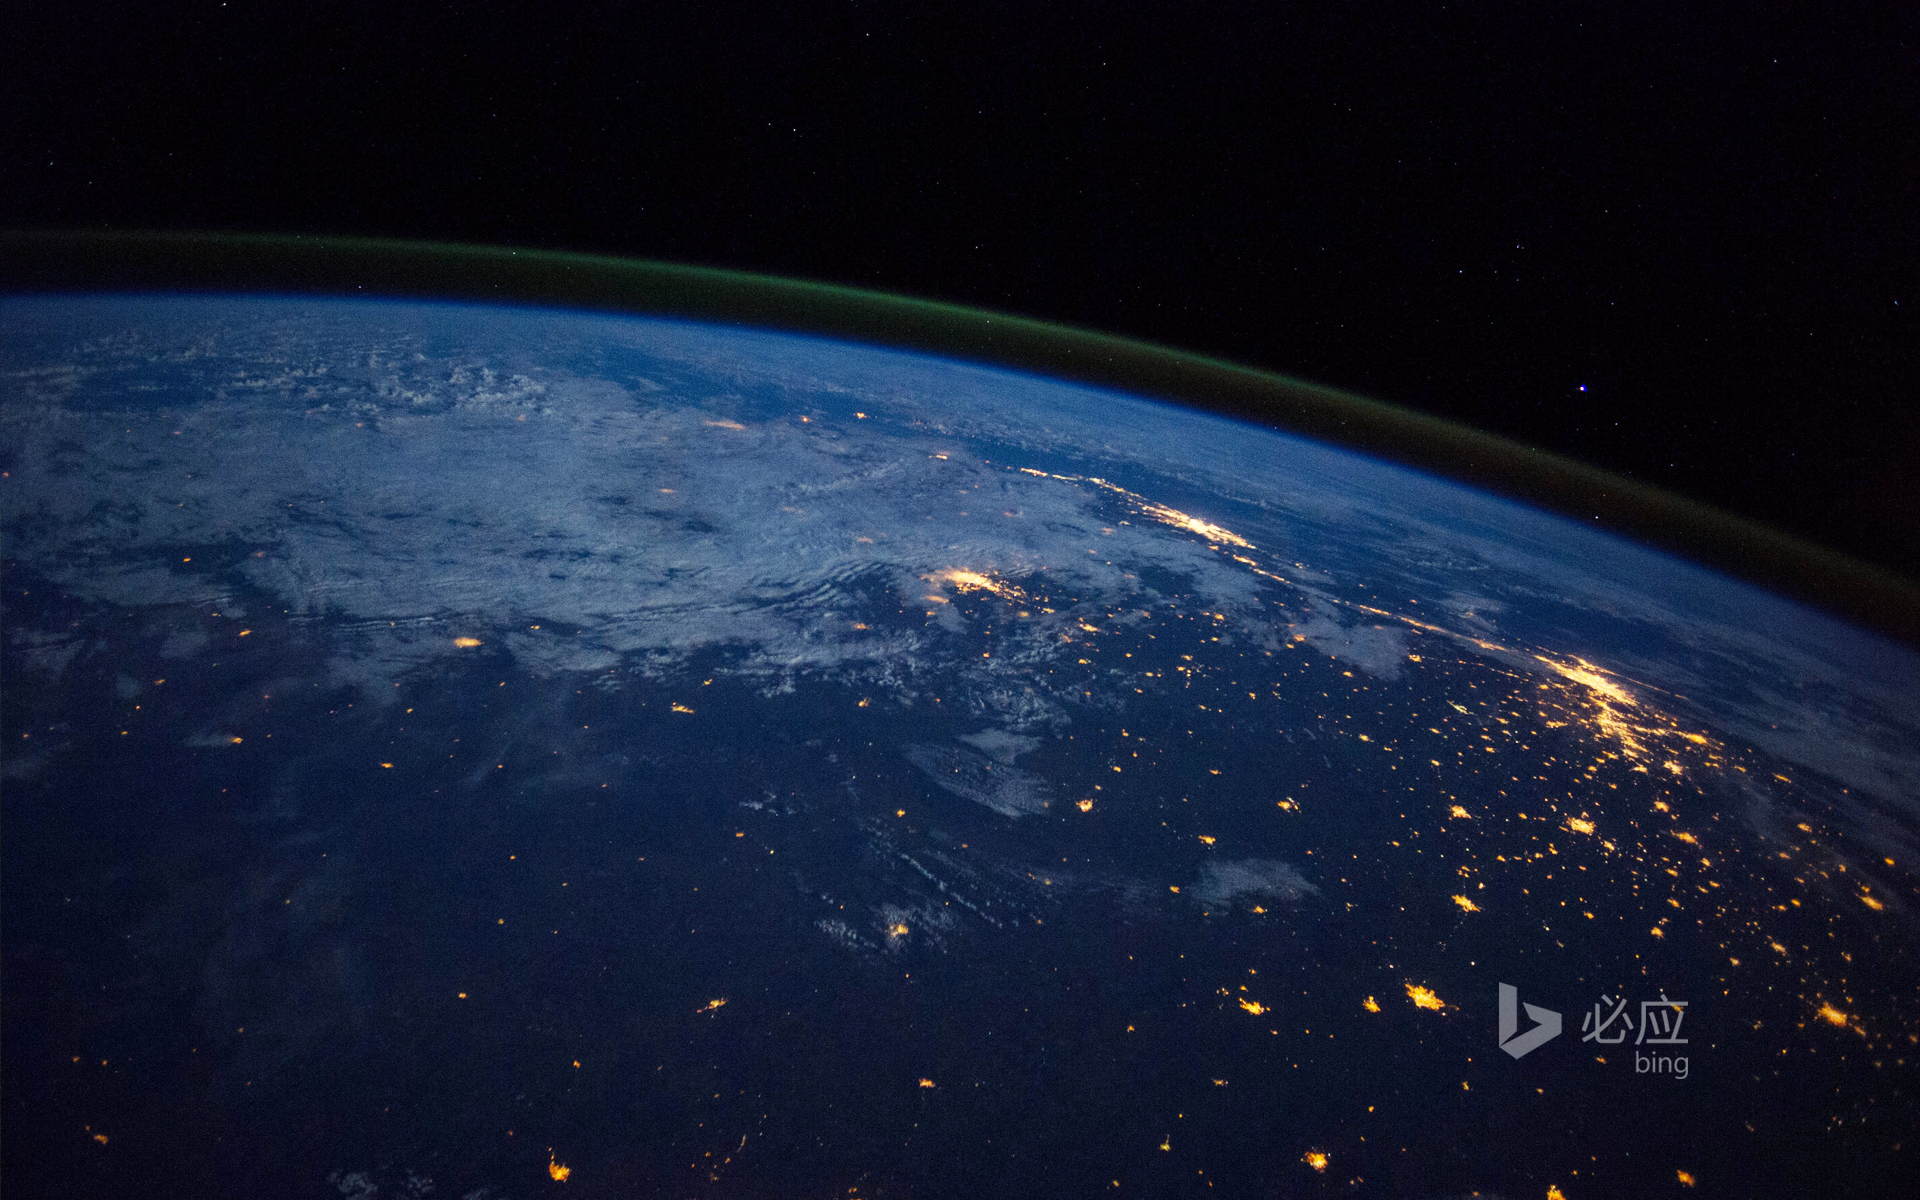 Rio de Janeiro and Sao Paulo seen from the International Space Station